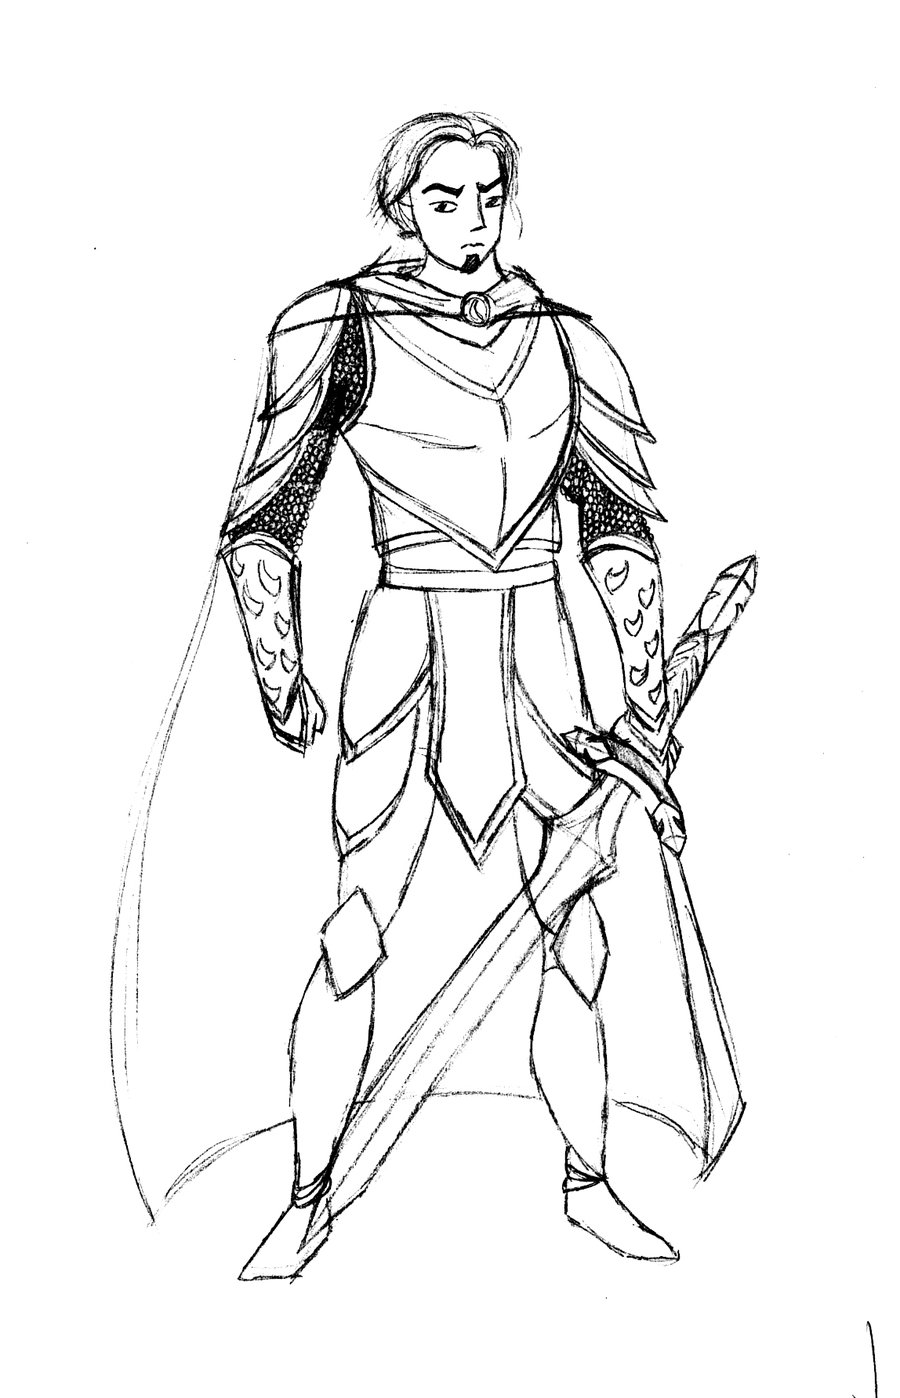 900x1398 The Knight Sketch By Sianalaurie